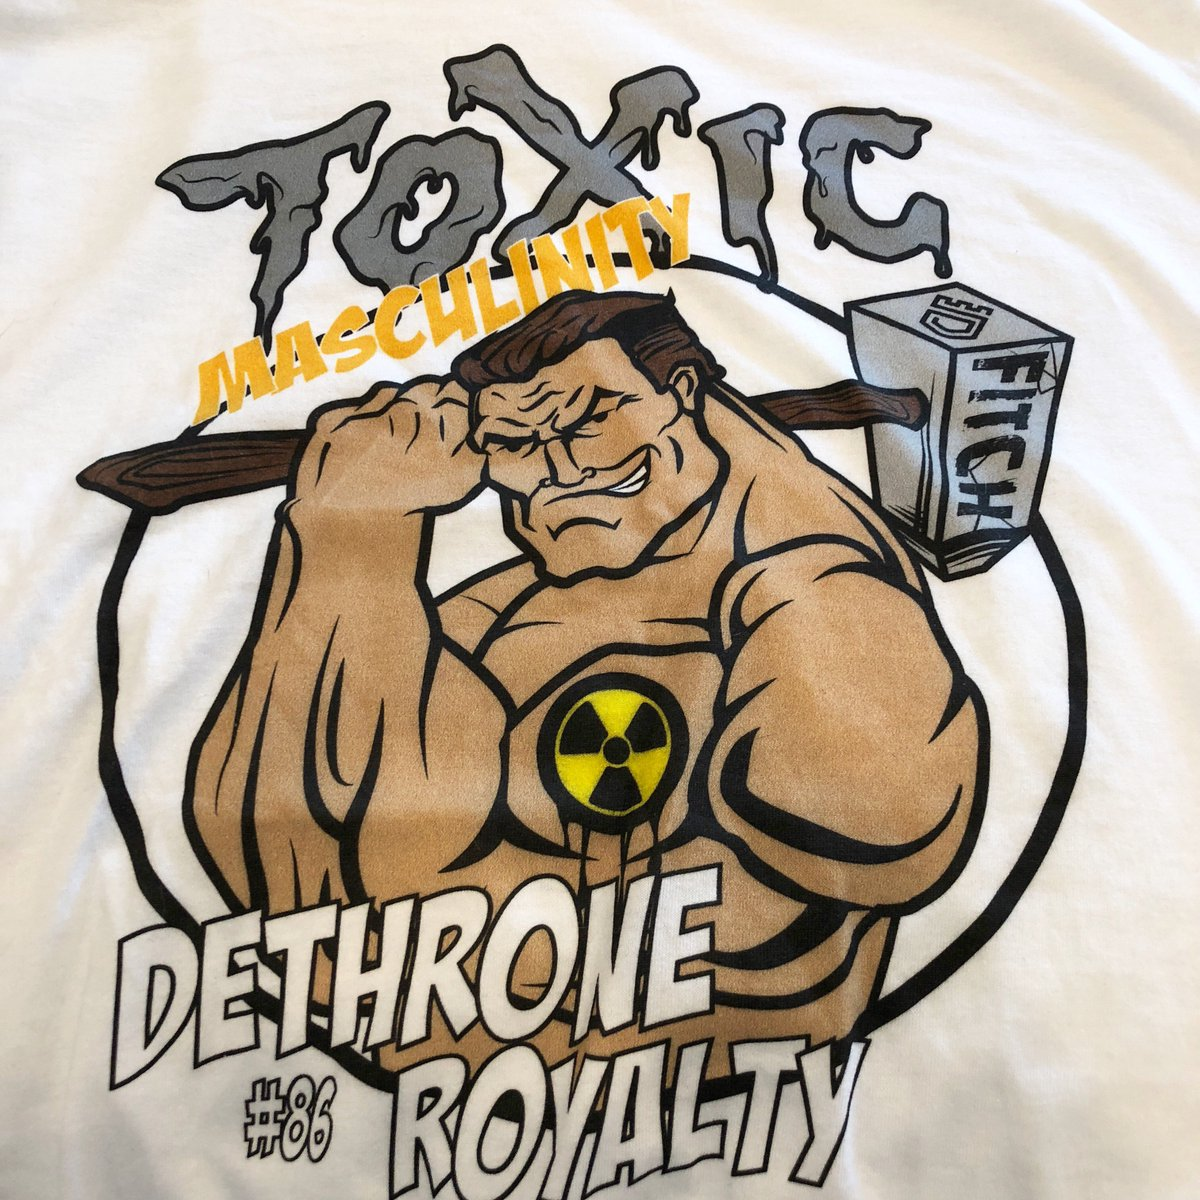 Let's go @Fitch_SMASH @BellatorMMA dethrone.com/products/toxic